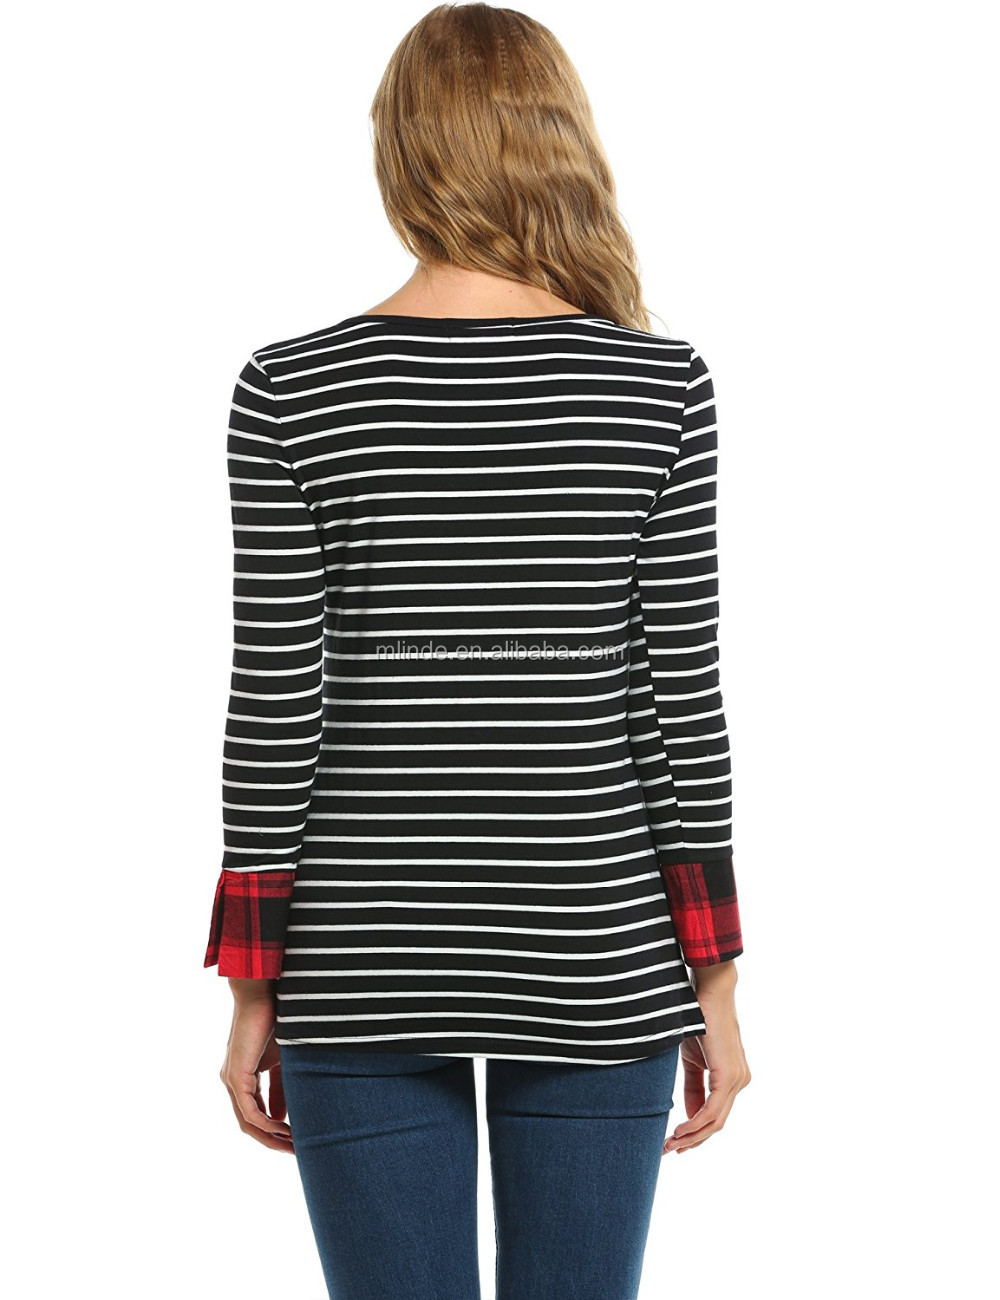 963769c3fed Indian Style Tunic Tops Women Casual Round Neck Roll Up 3/4 Sleeve Striped  Shirt